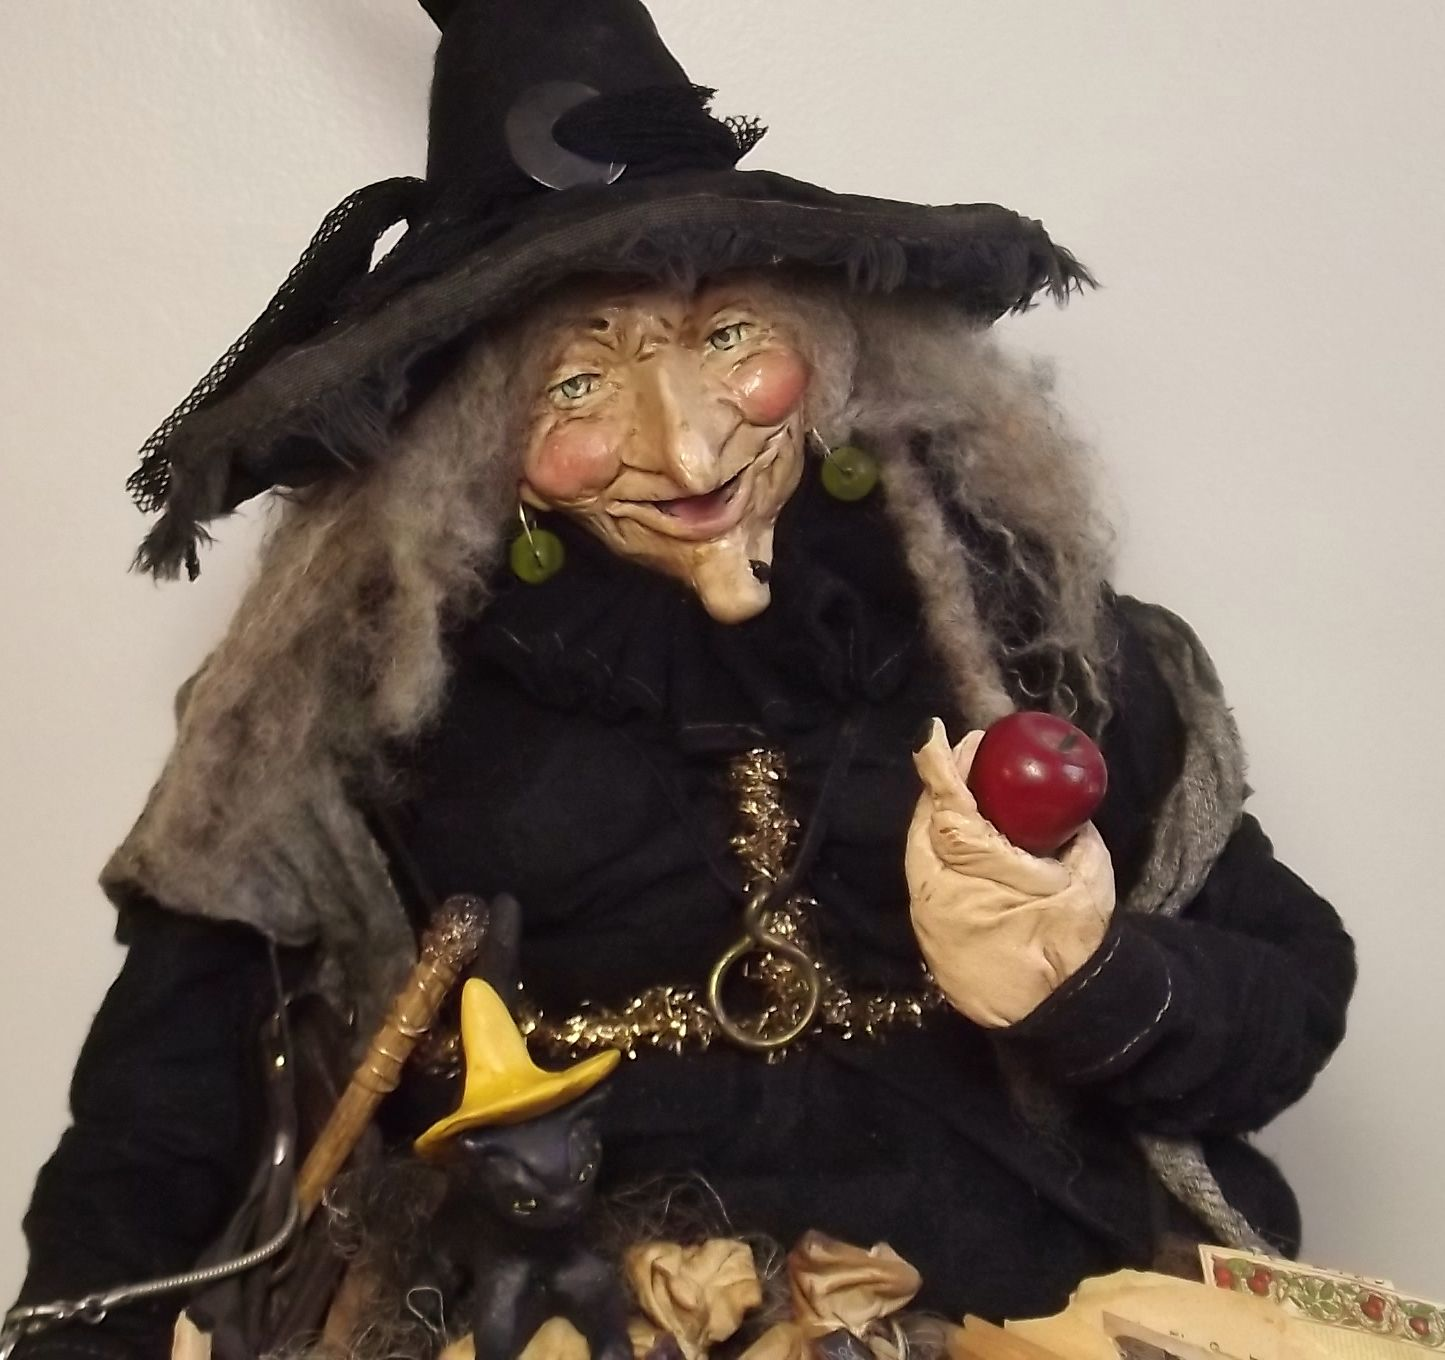 Handmade Primitive Witch By Kim Sweet~Kim's Klaus-29 inch Sitting Witch peddling her poison Apples